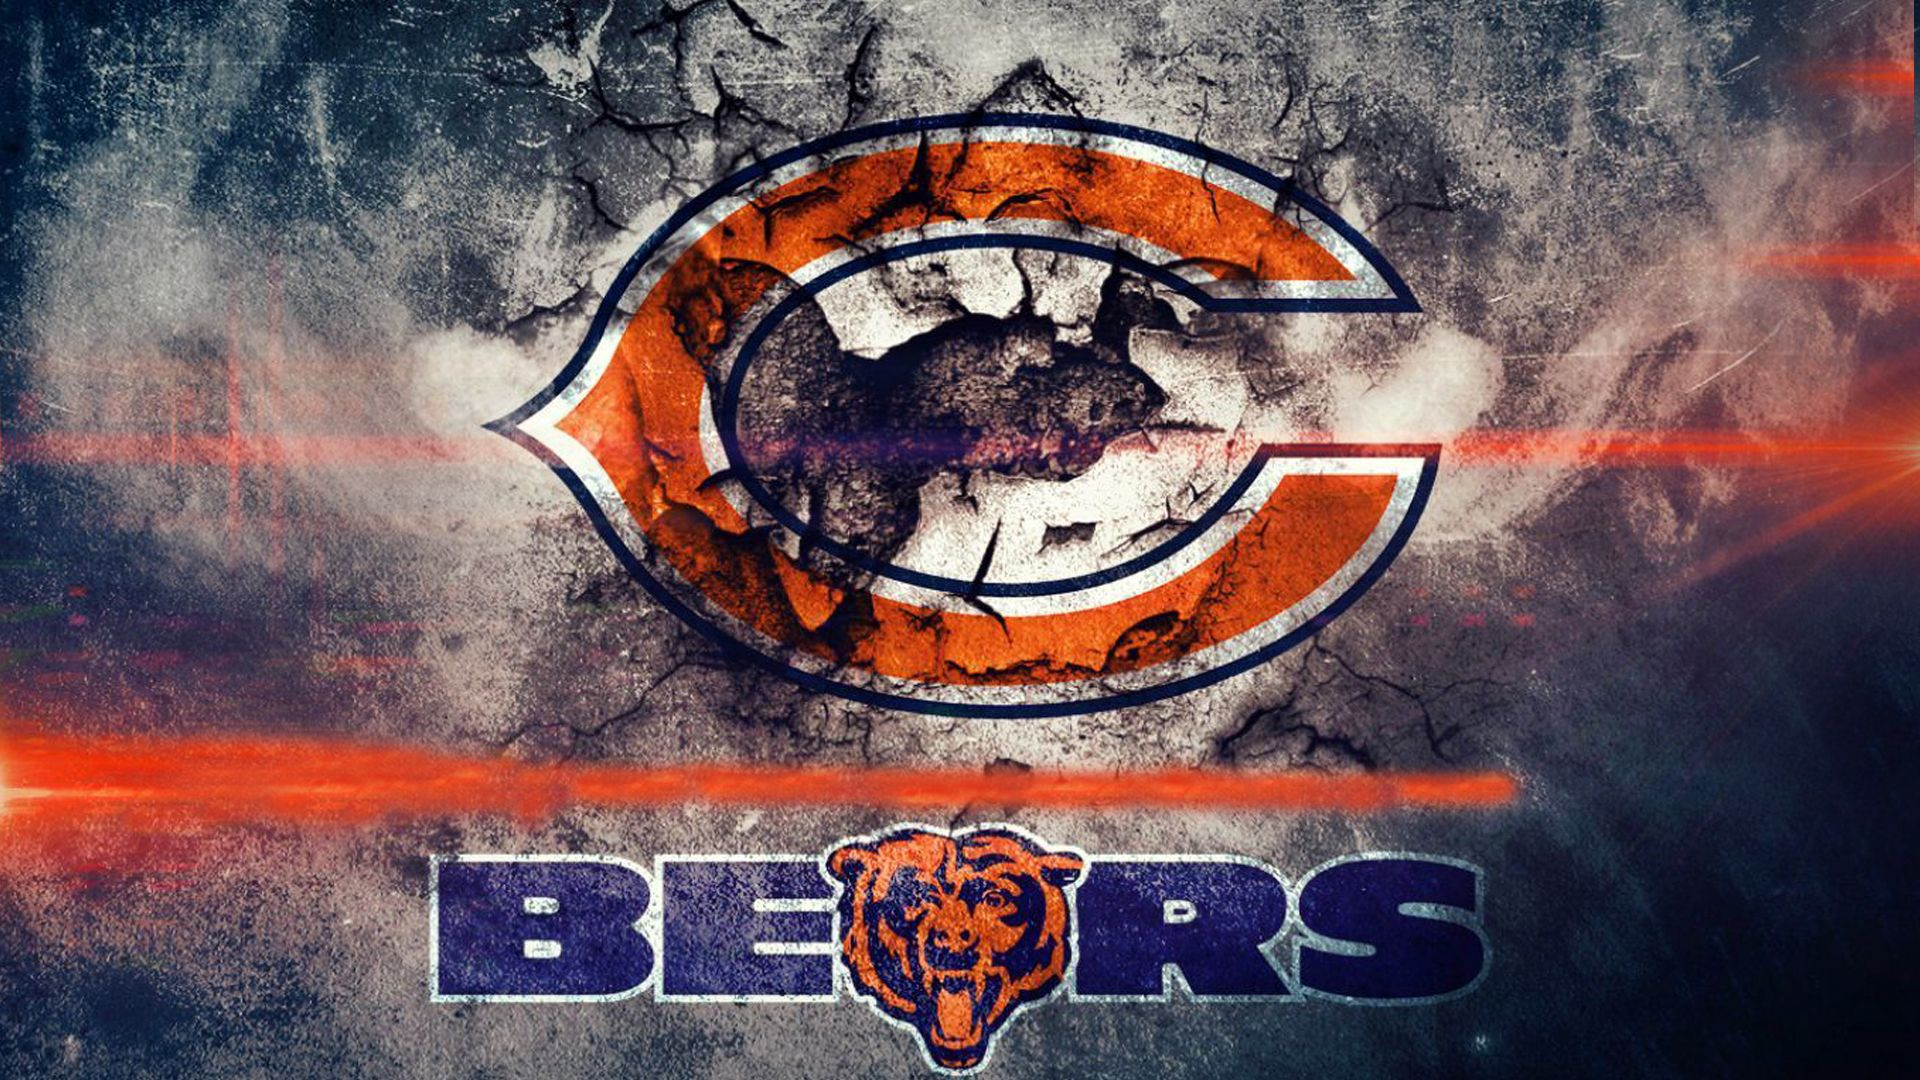 12 Best Chicago Bears Wallpapers #01 - The Bears ...